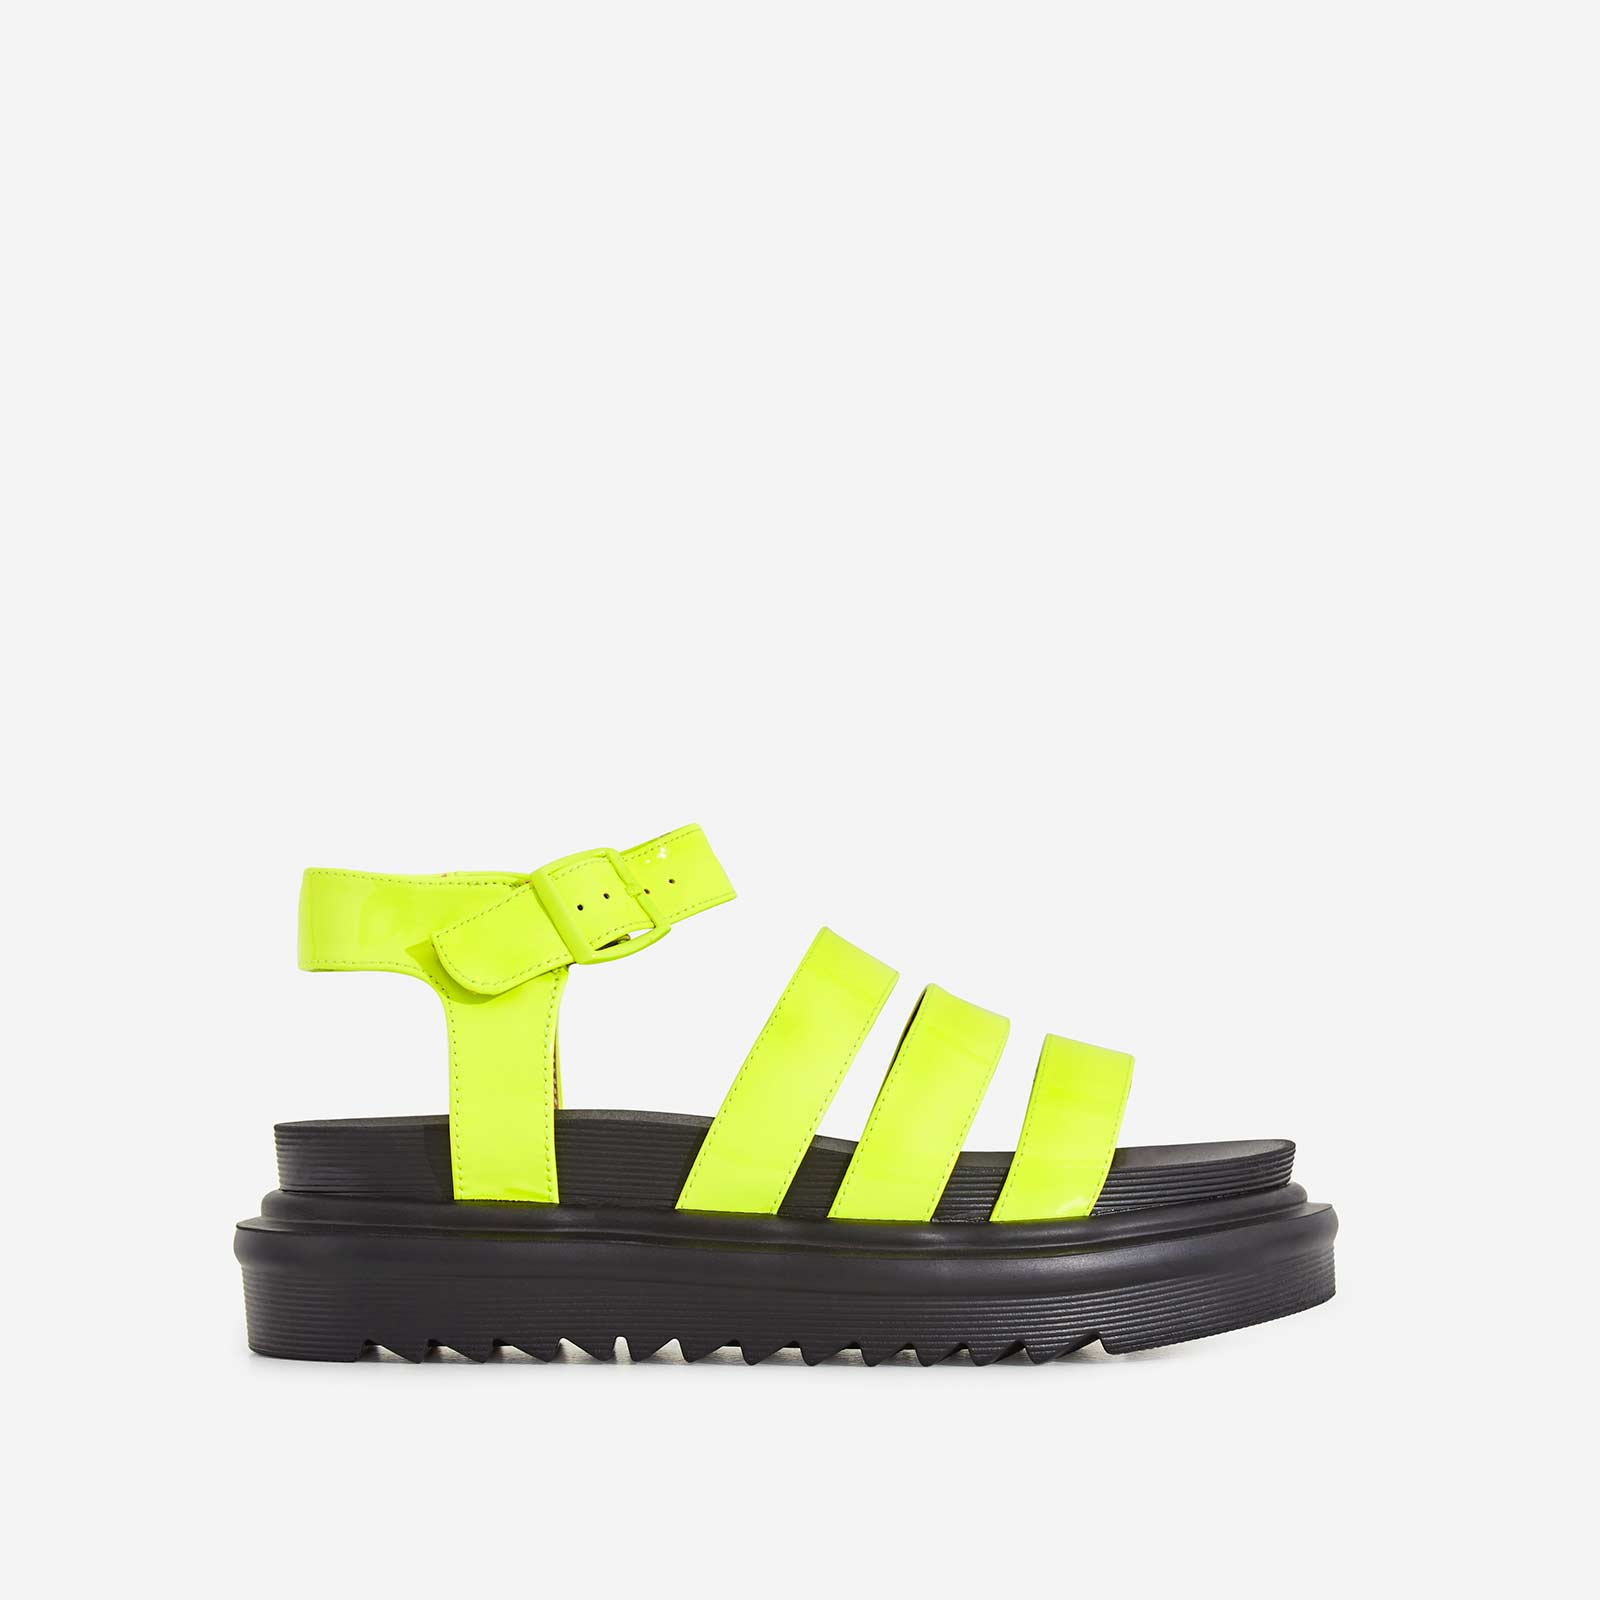 Clueless Chunky Sole Sandal In Neon Yellow Patent